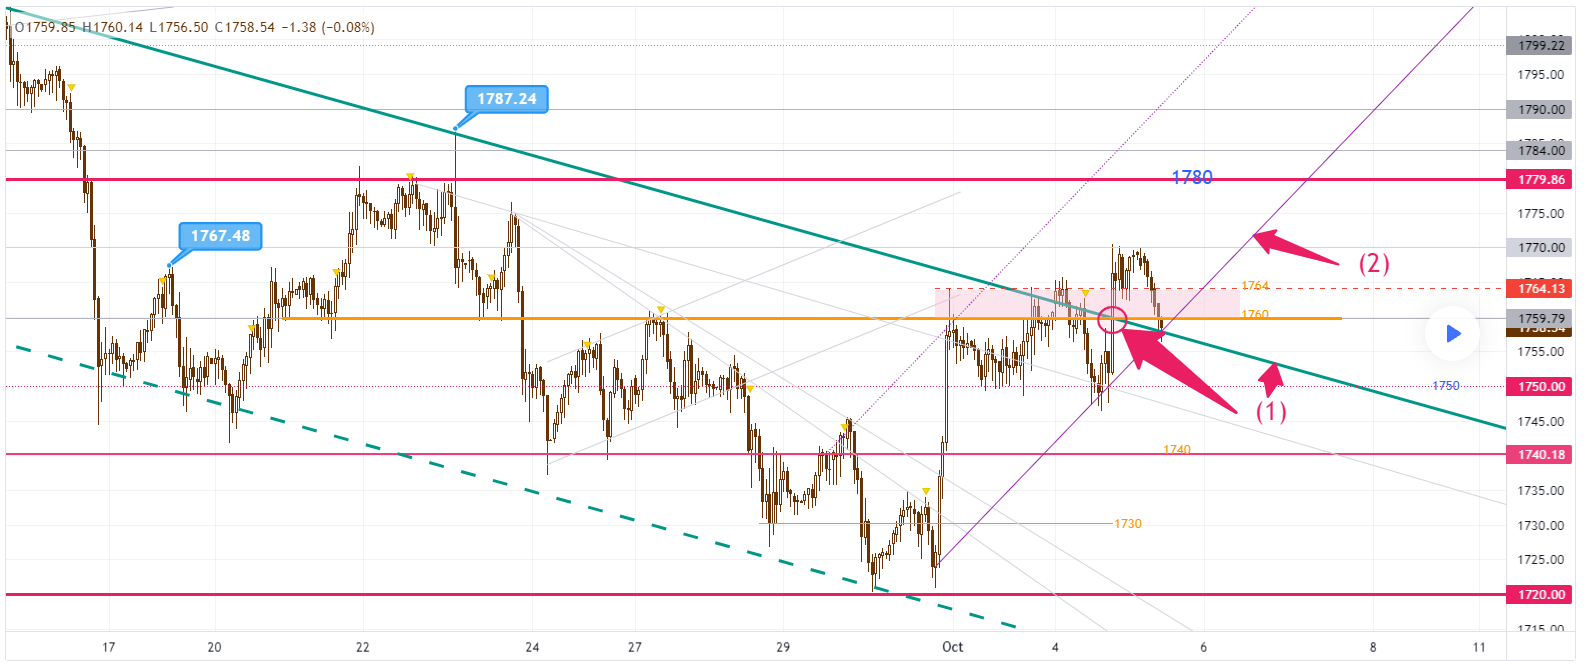 Gold Trend 05/10